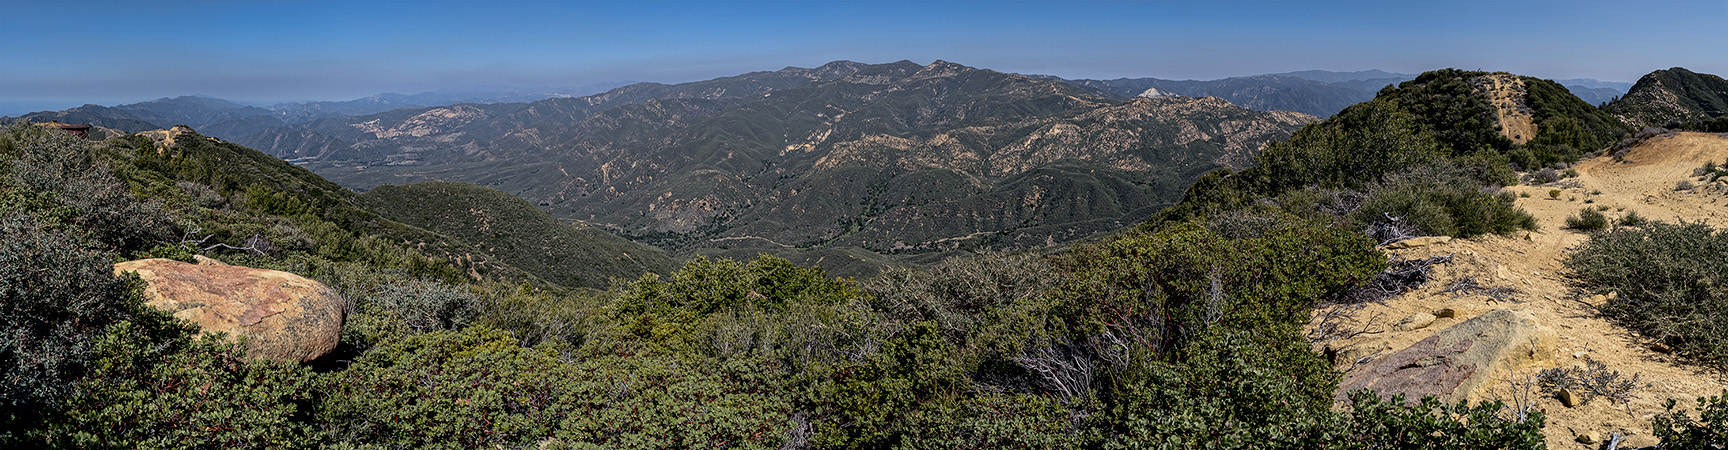 The view north to Monte Arido from Santa Ynez ridge; Divide Peak is far frame right (east), March 22, 2013